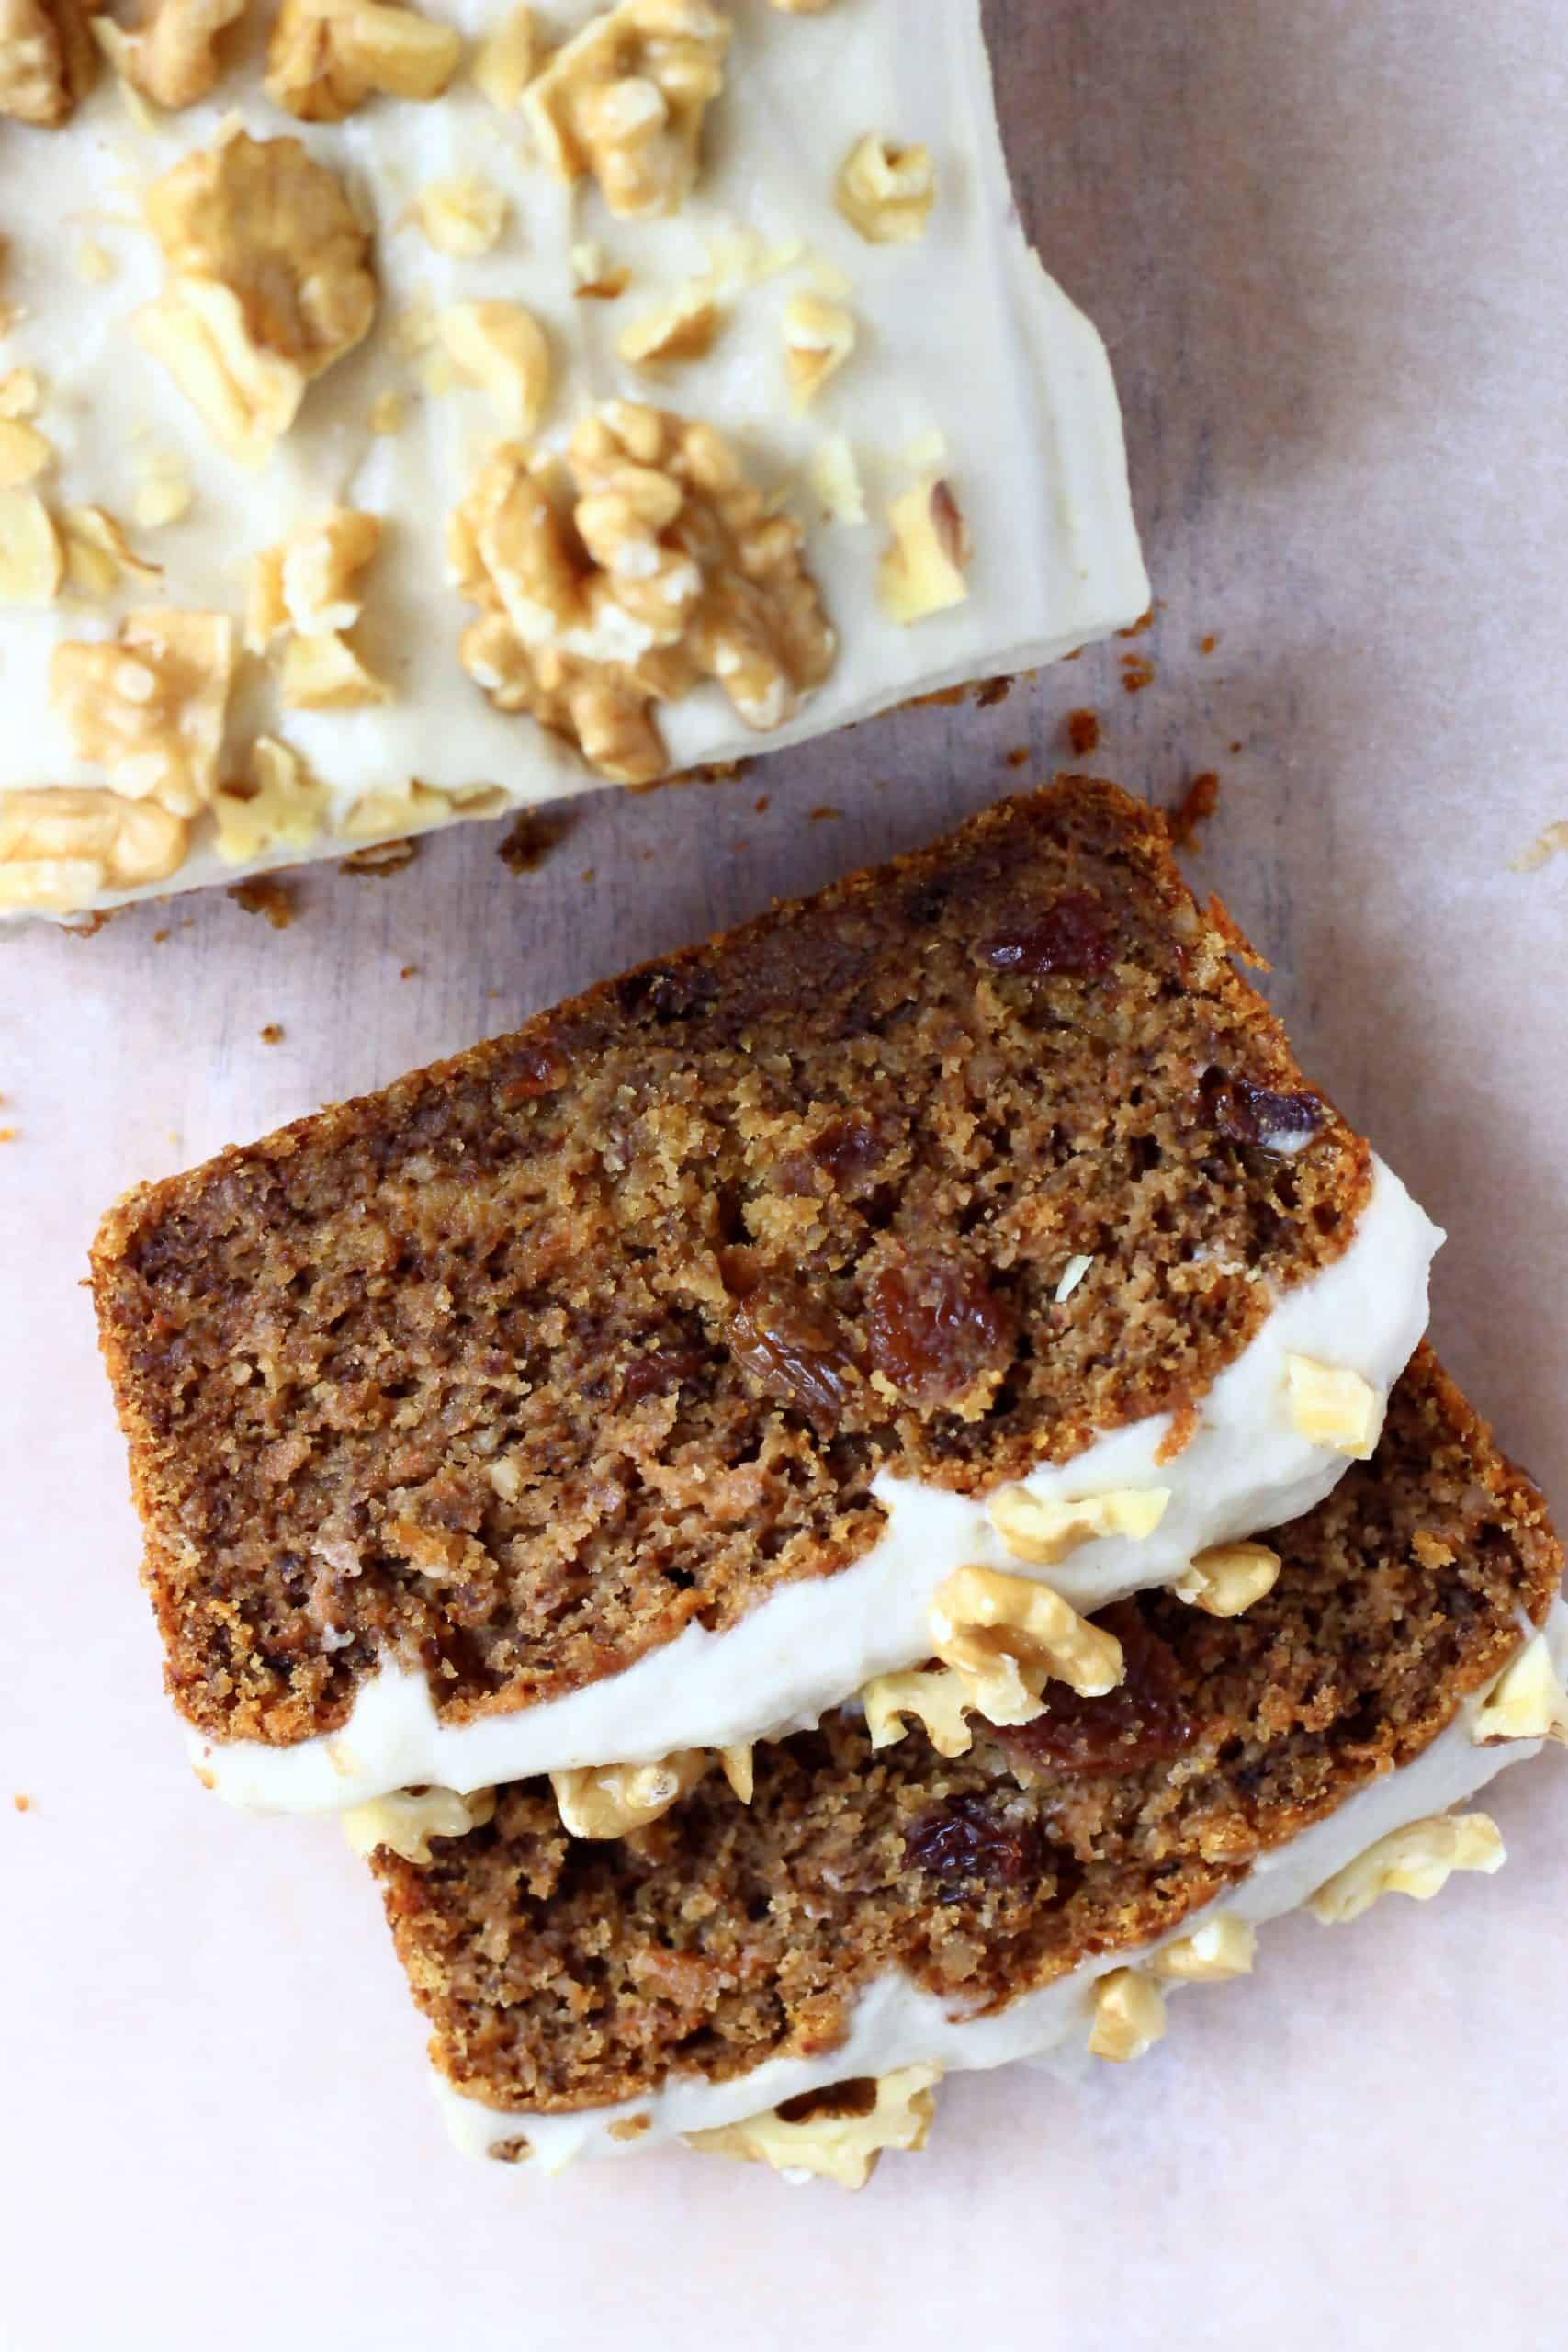 A loaf of vegan carrot bread topped with frosting and walnuts with two slices next to it